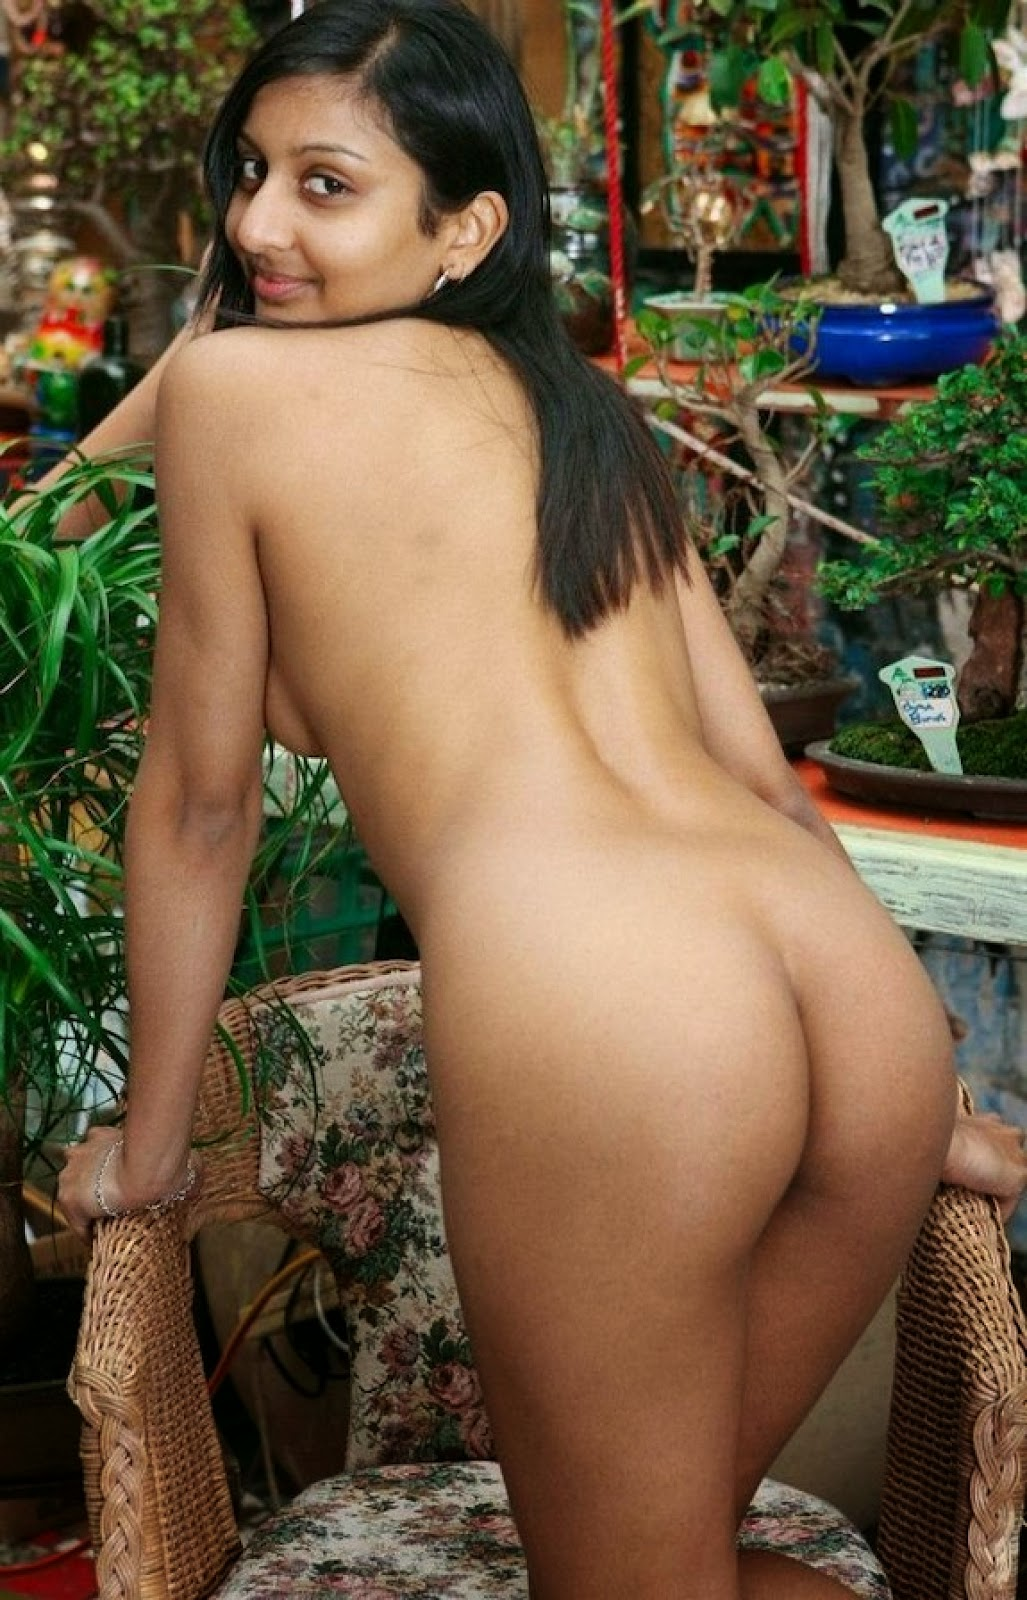 local female nude pics